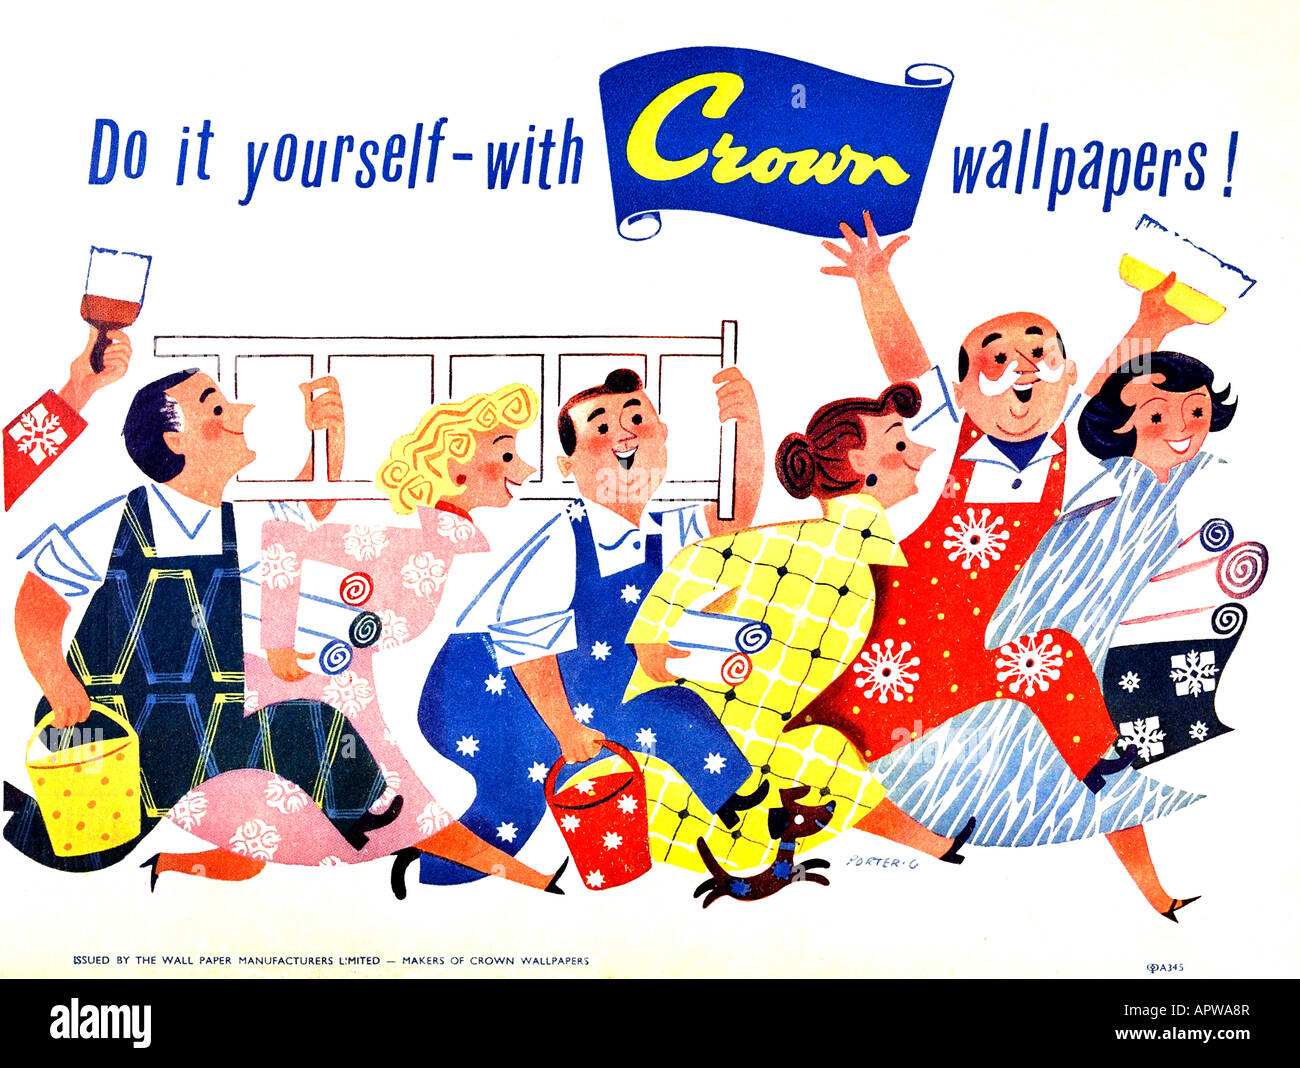 Crown Wallpaper Advertisement 1958 For Editorial Use Only - Stock Image